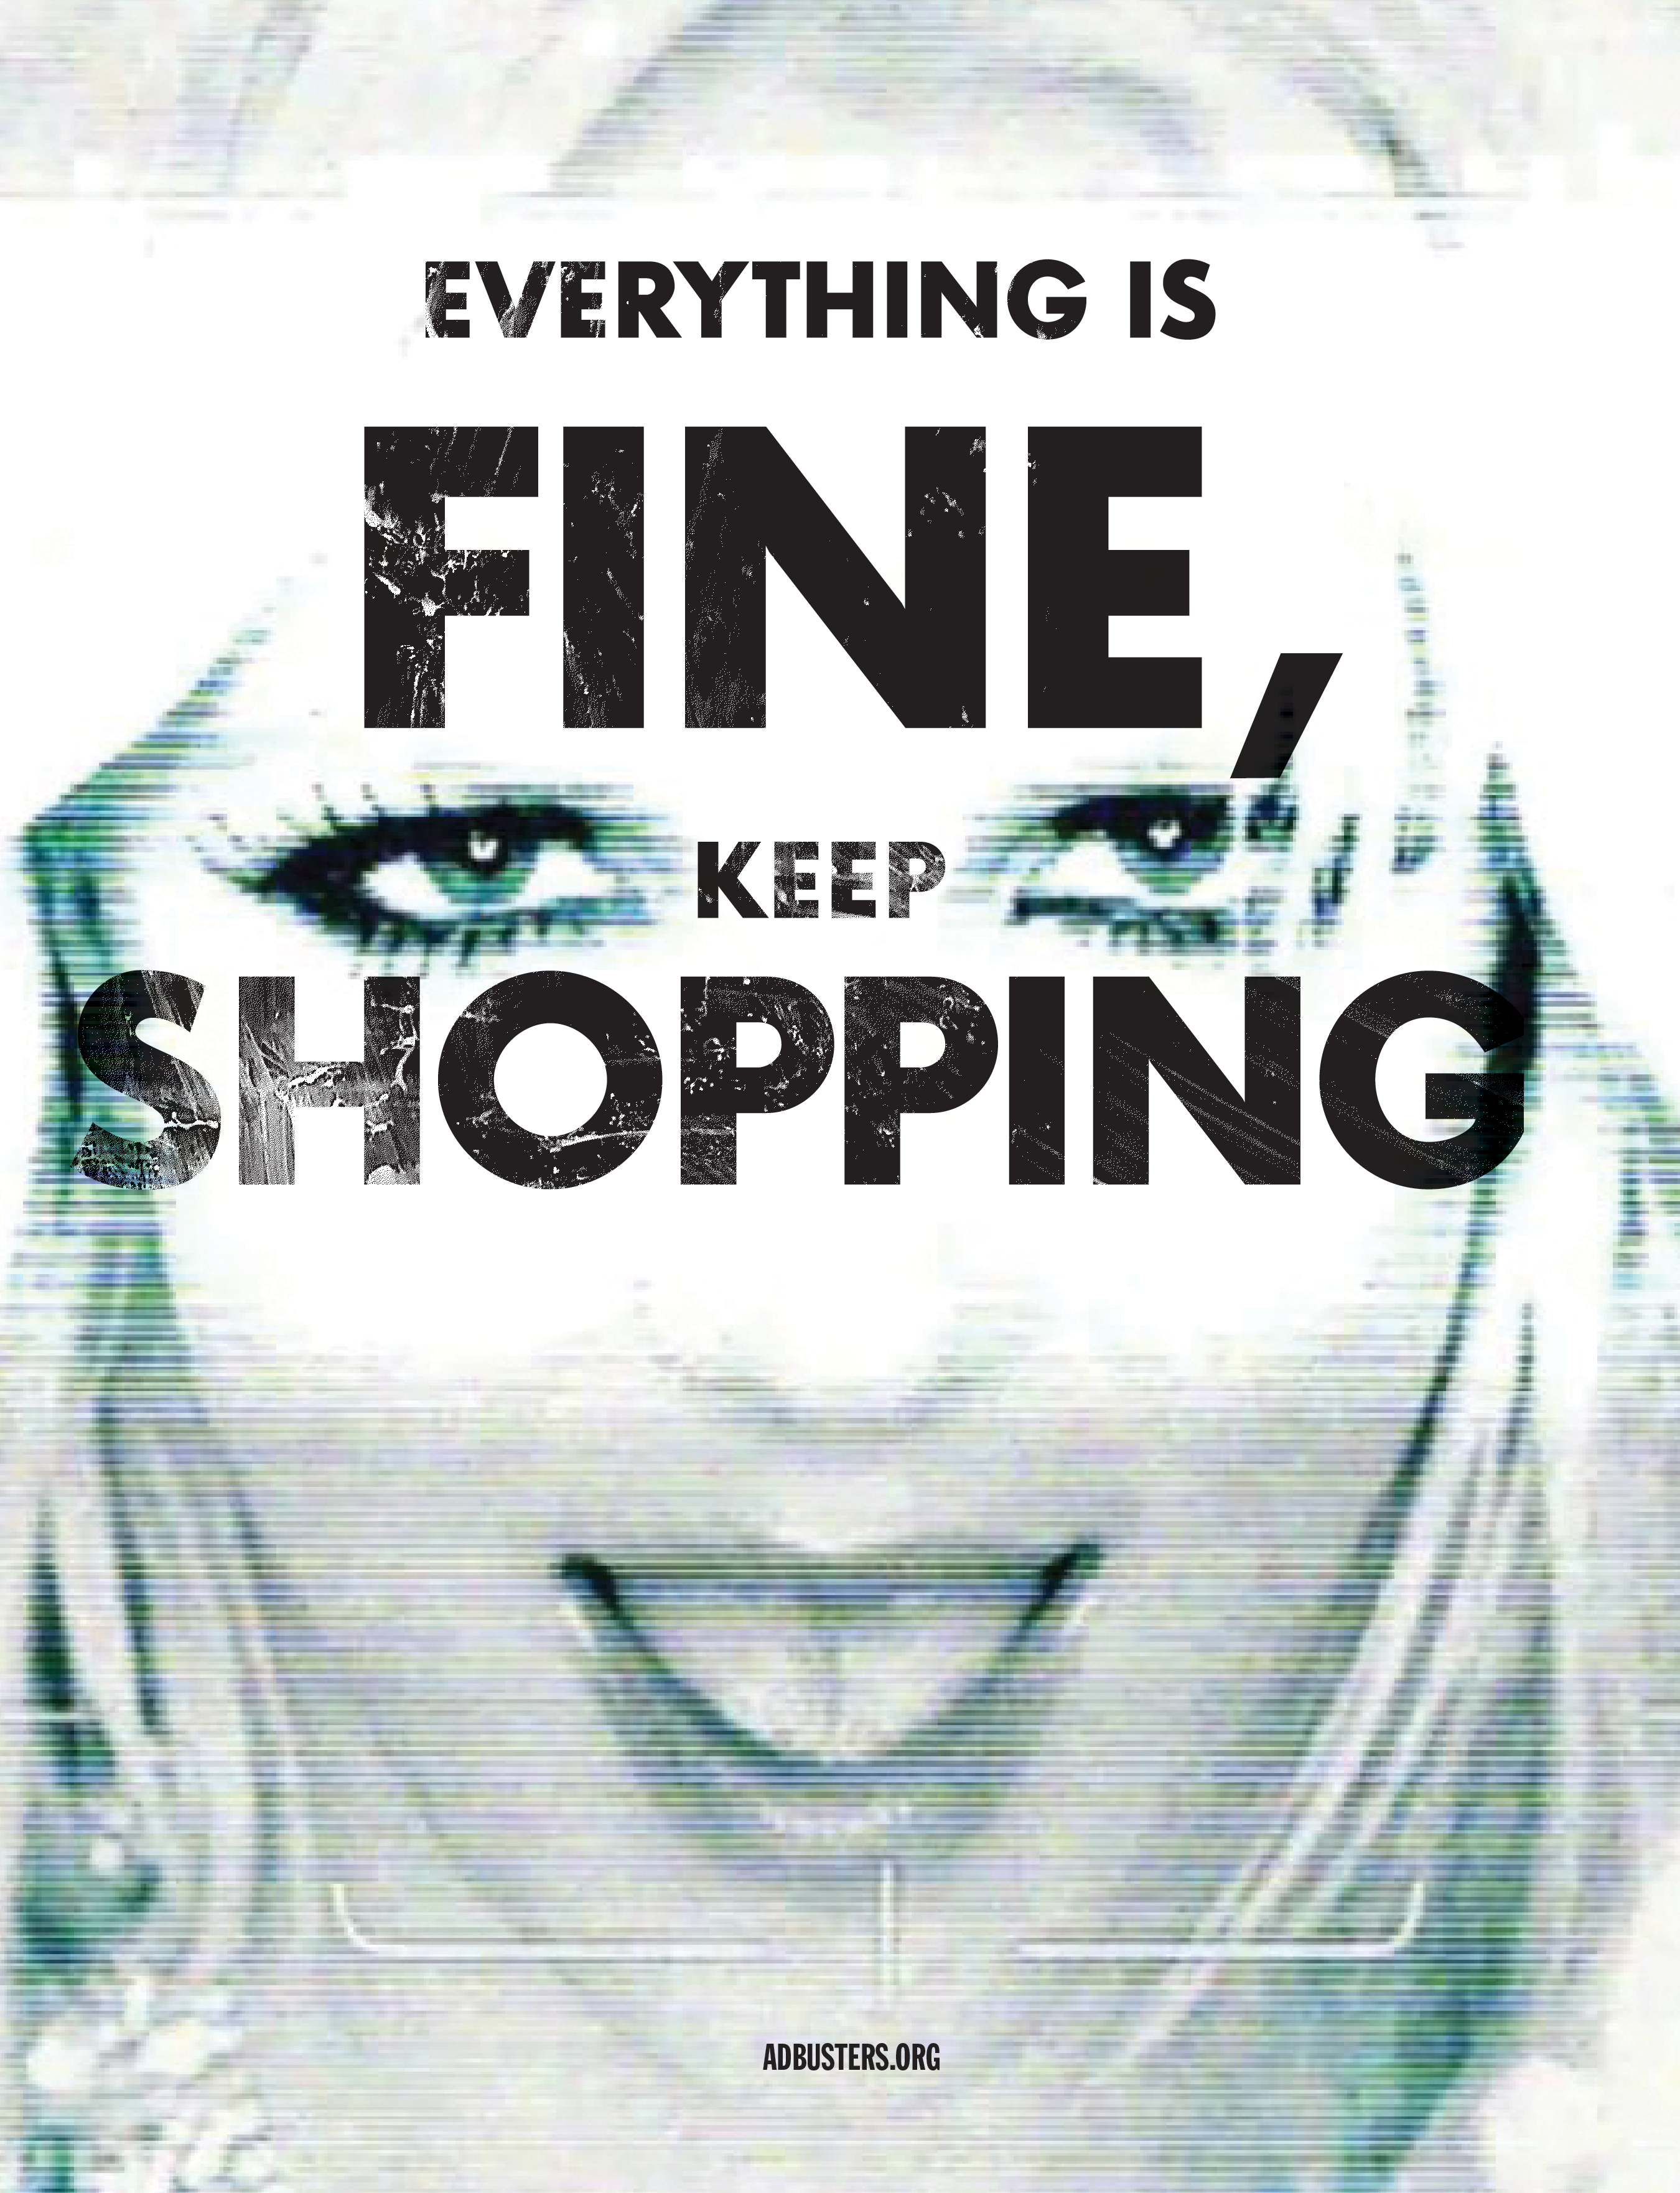 adbusters_everything-is-fine-keep-shopping